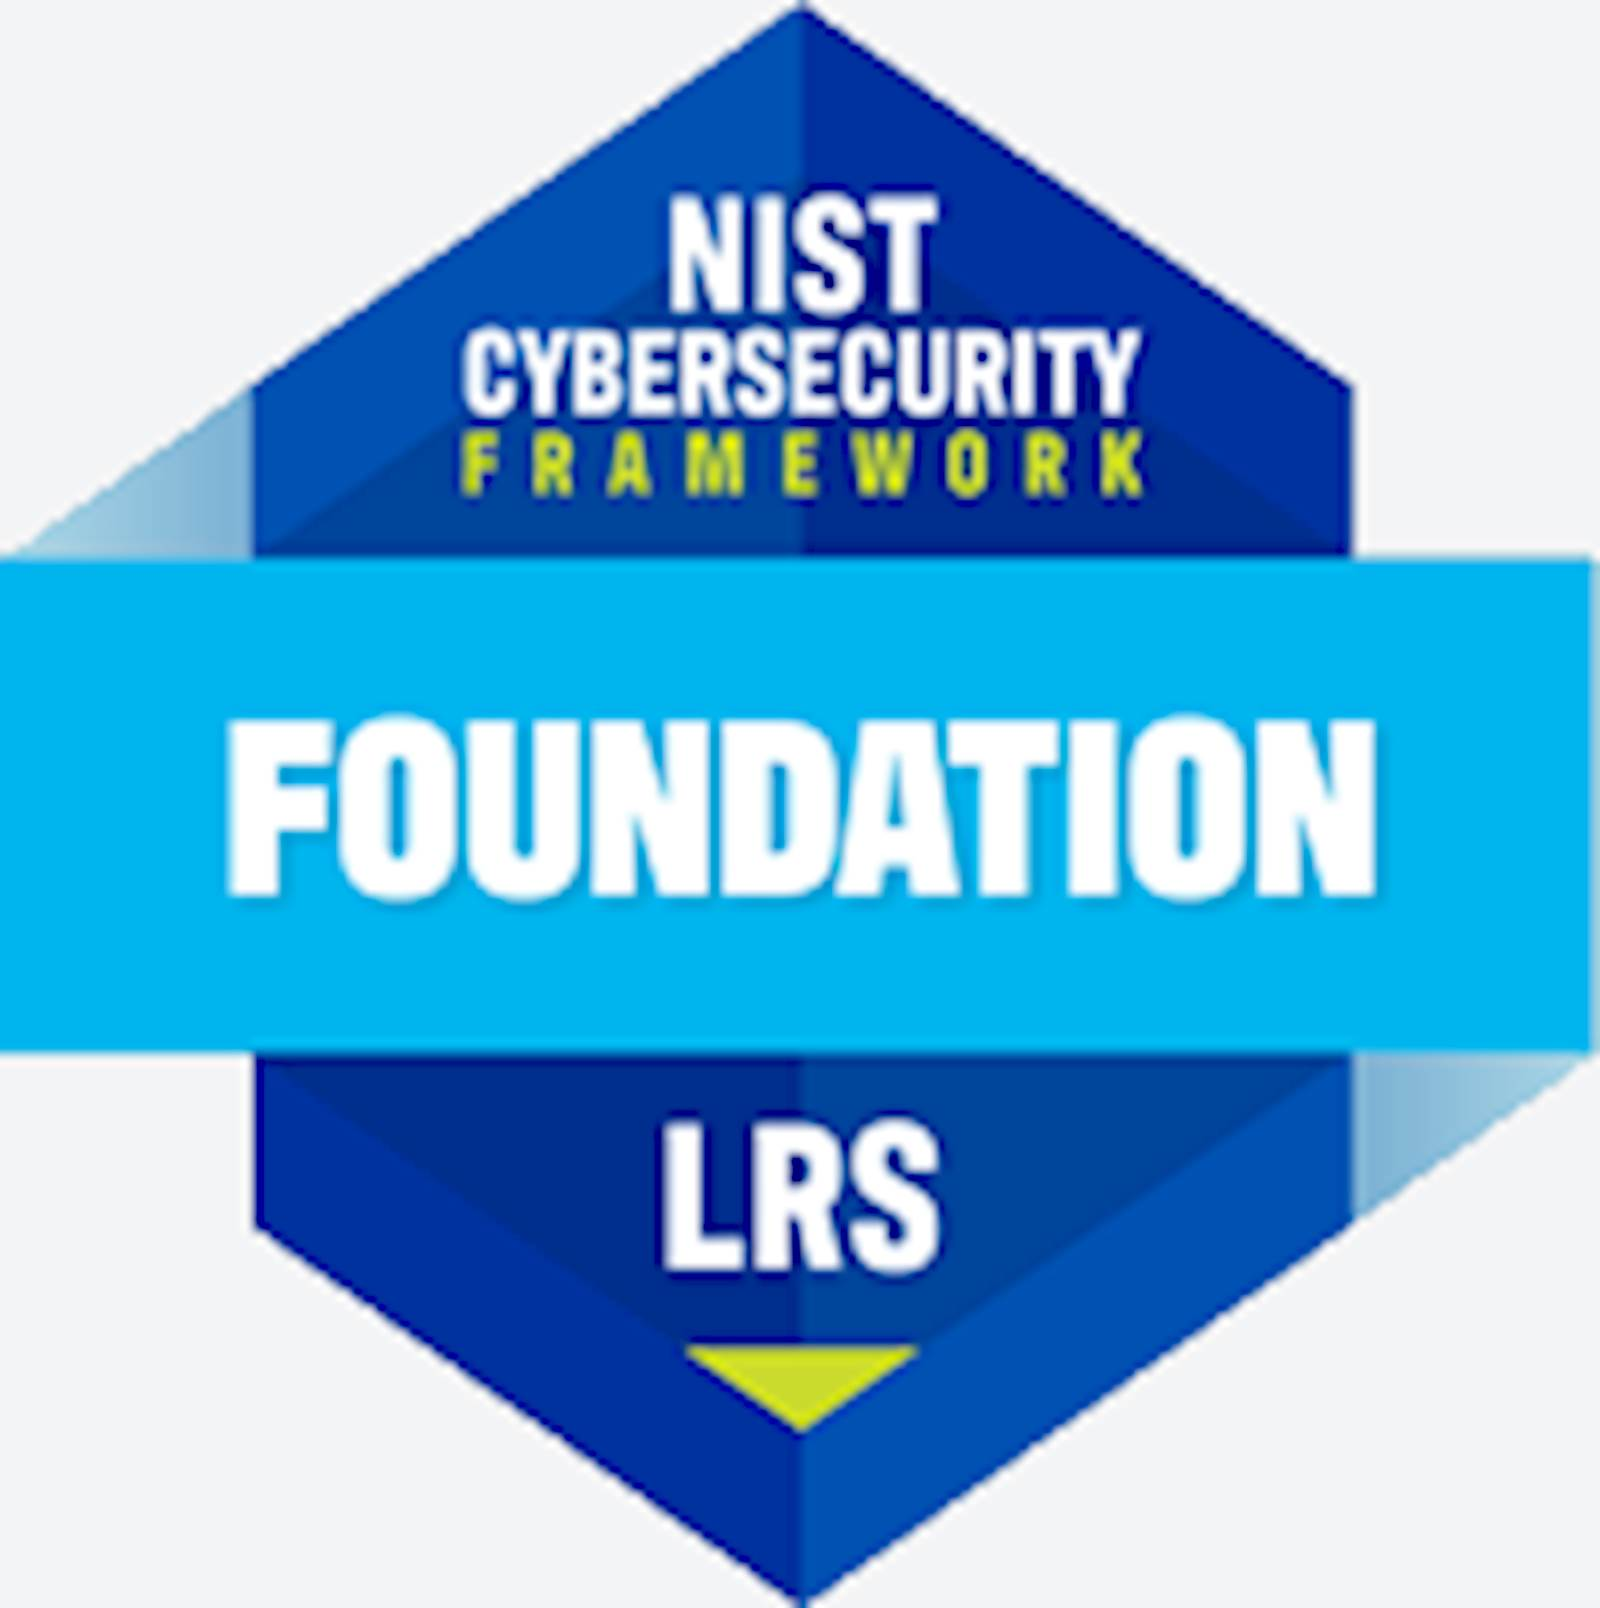 NIST Cybersecurity Framework Course Details